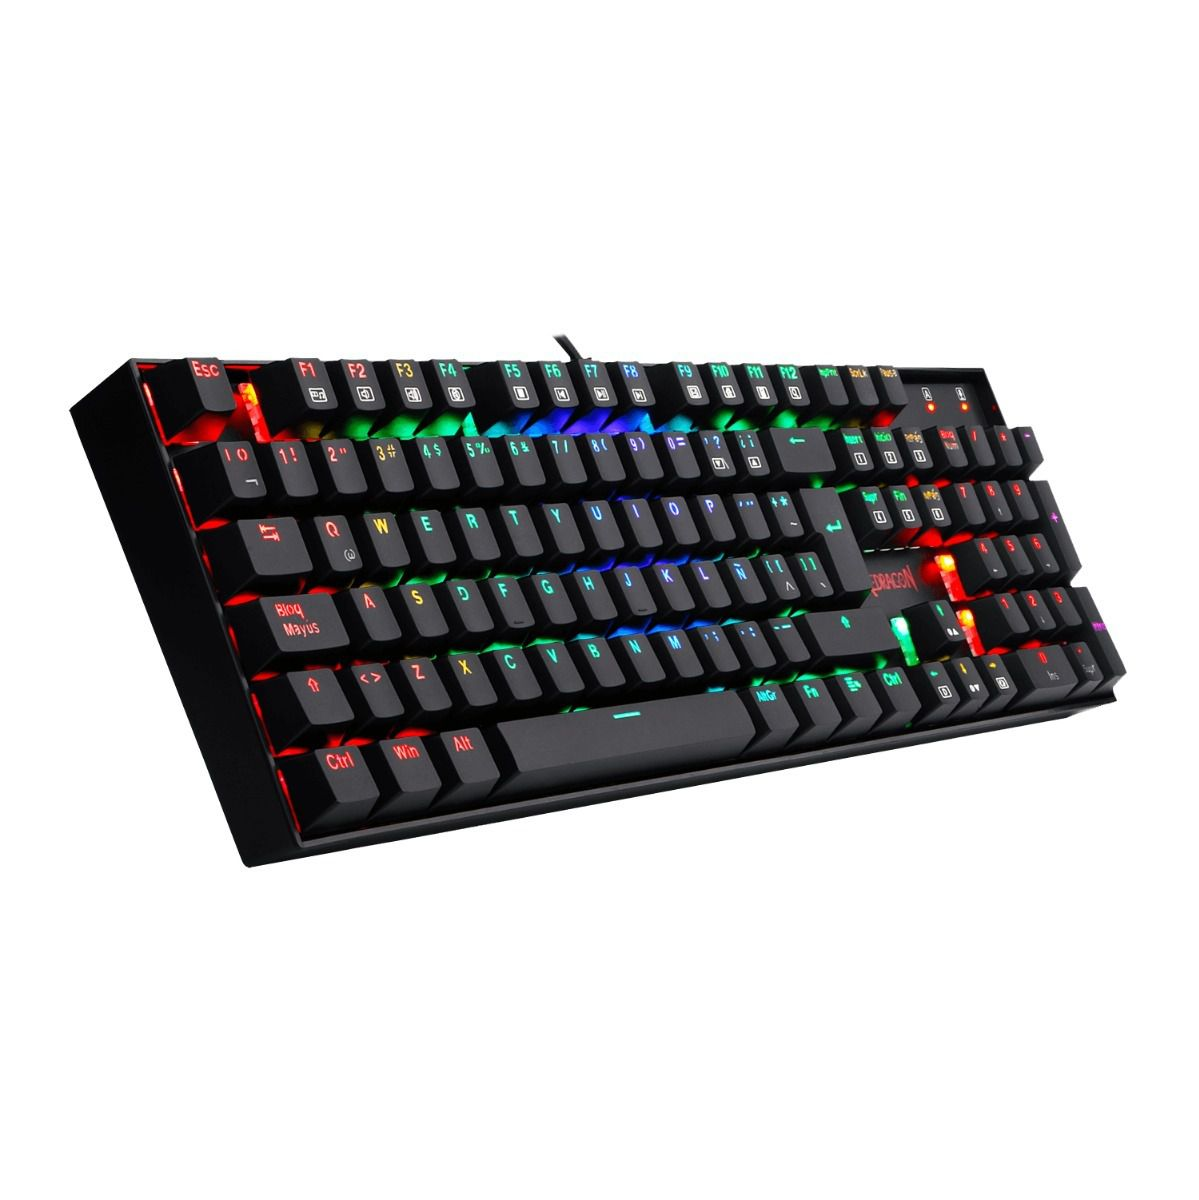 Teclado Gamer Redragon Mitra Switch Outemu Blue K551 Mecânico